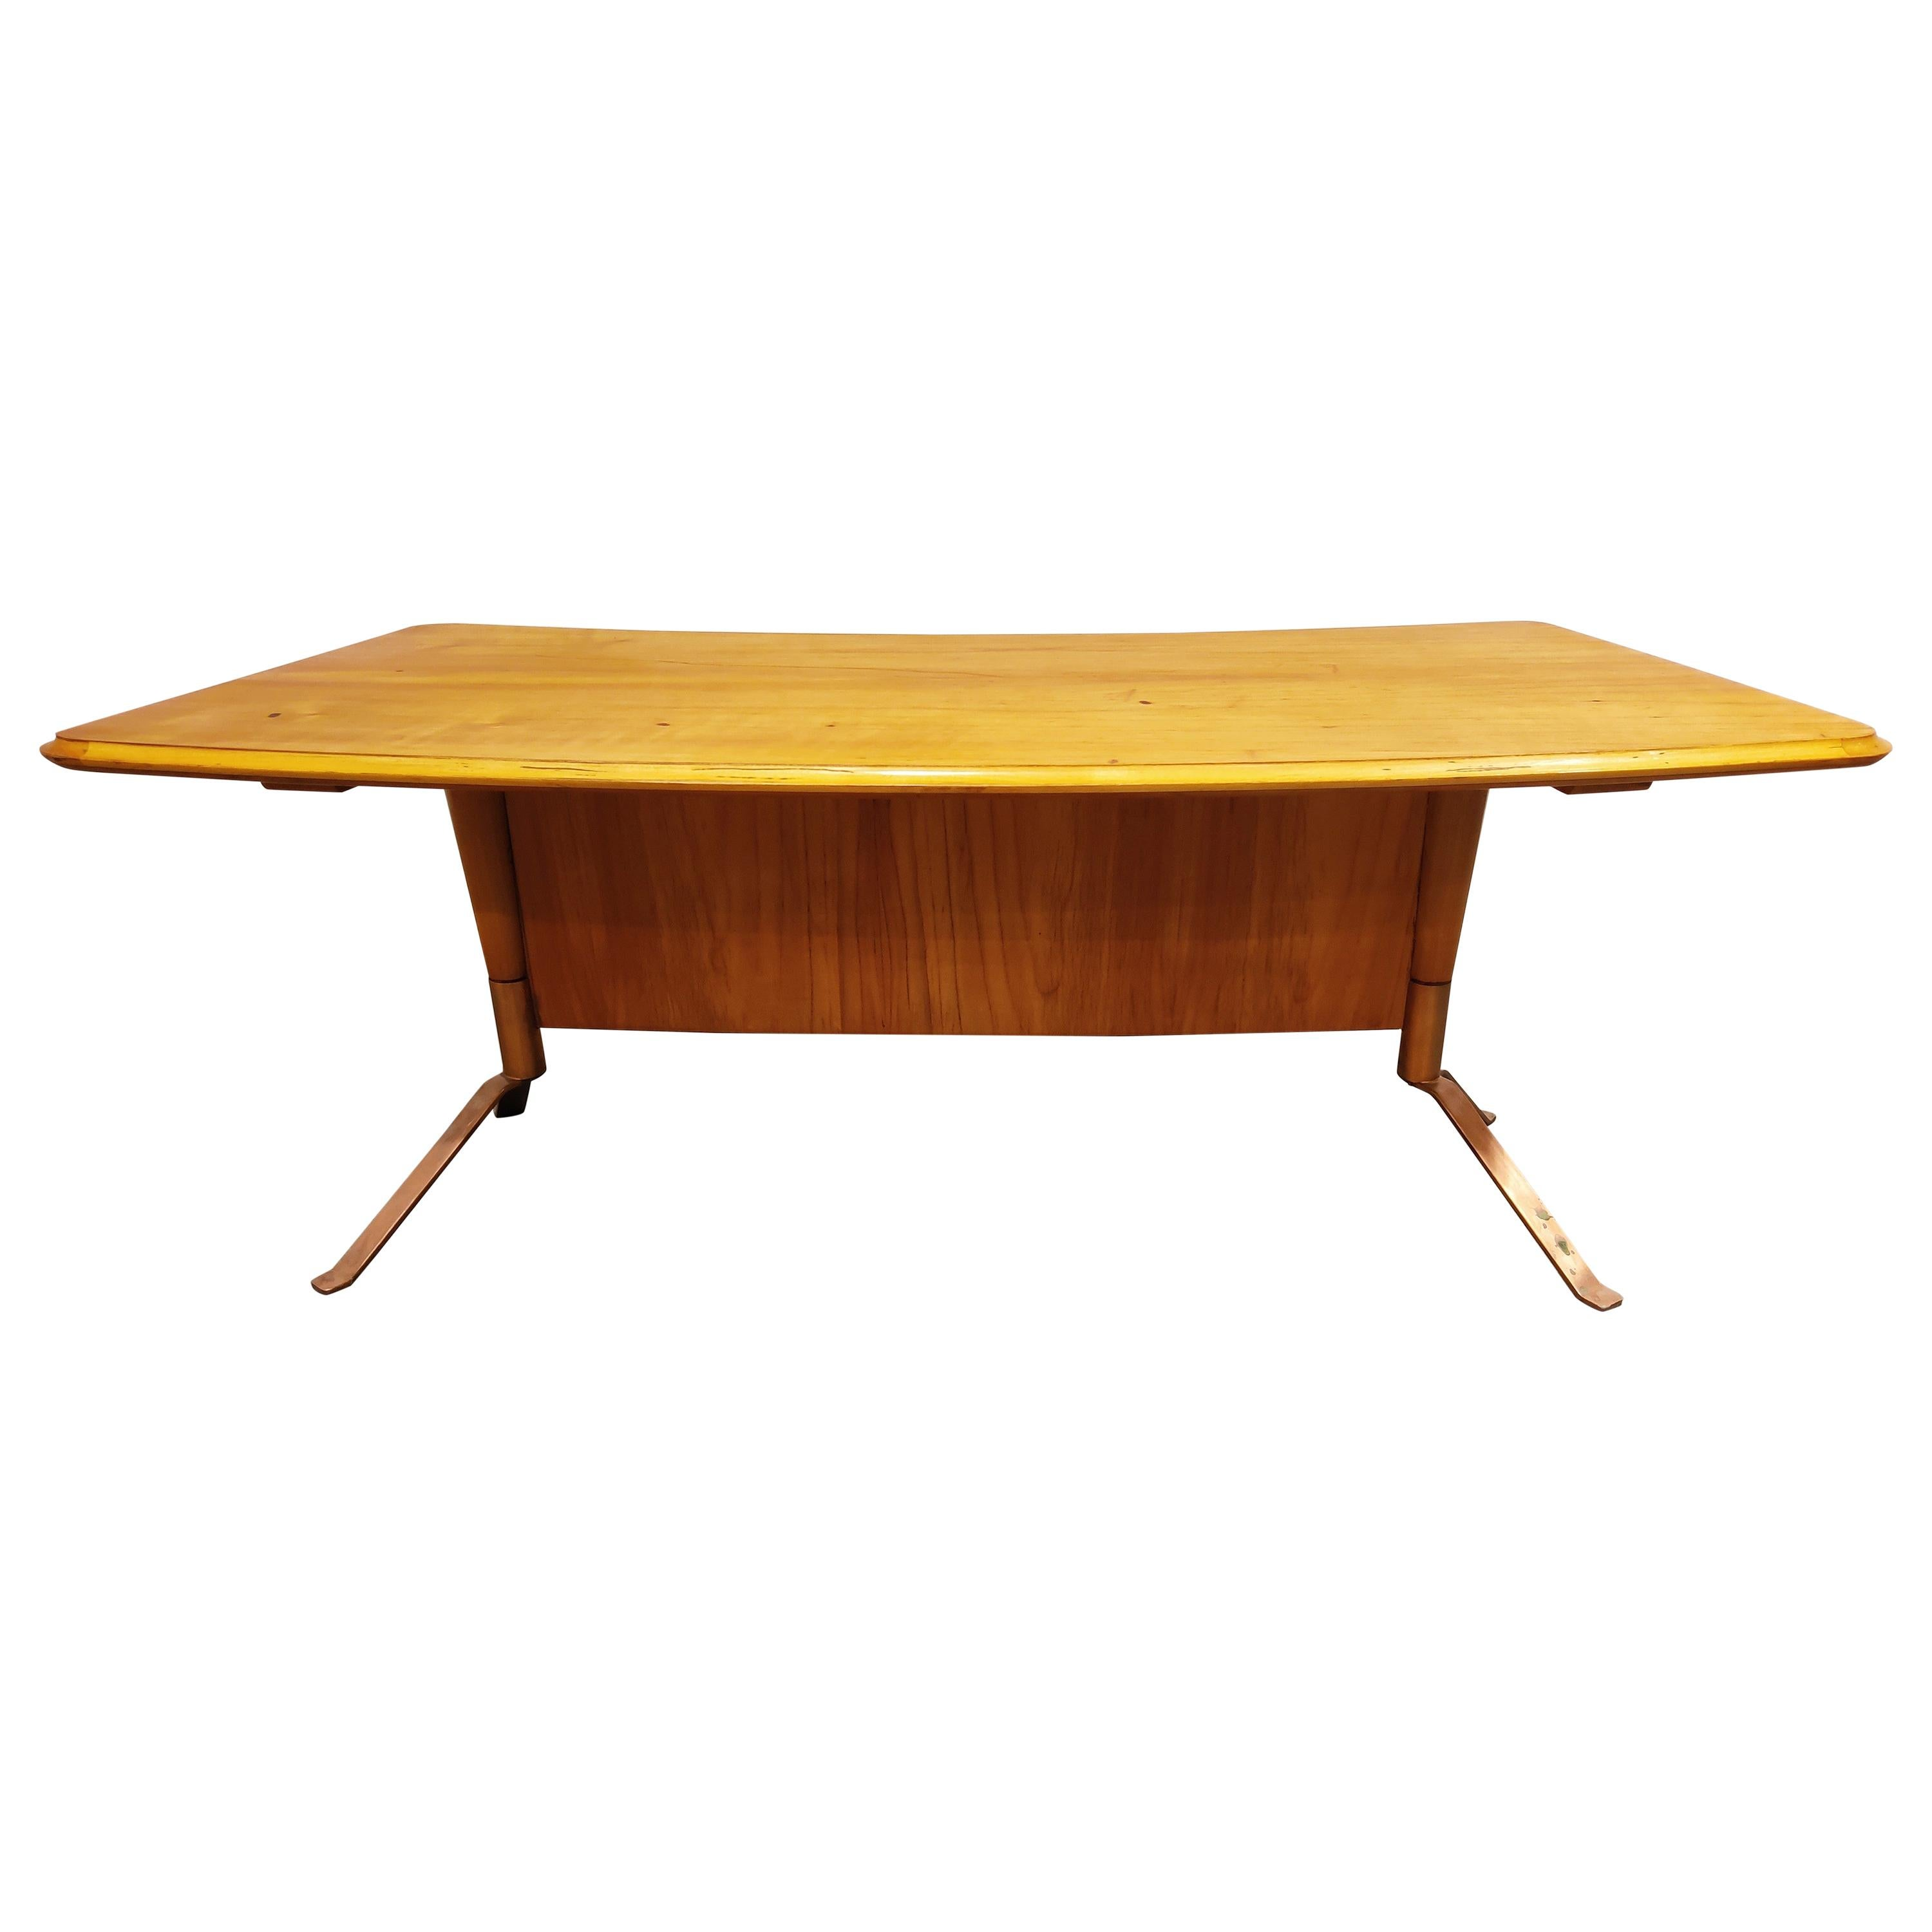 Midcentury Curved Coffee Table, 1960s